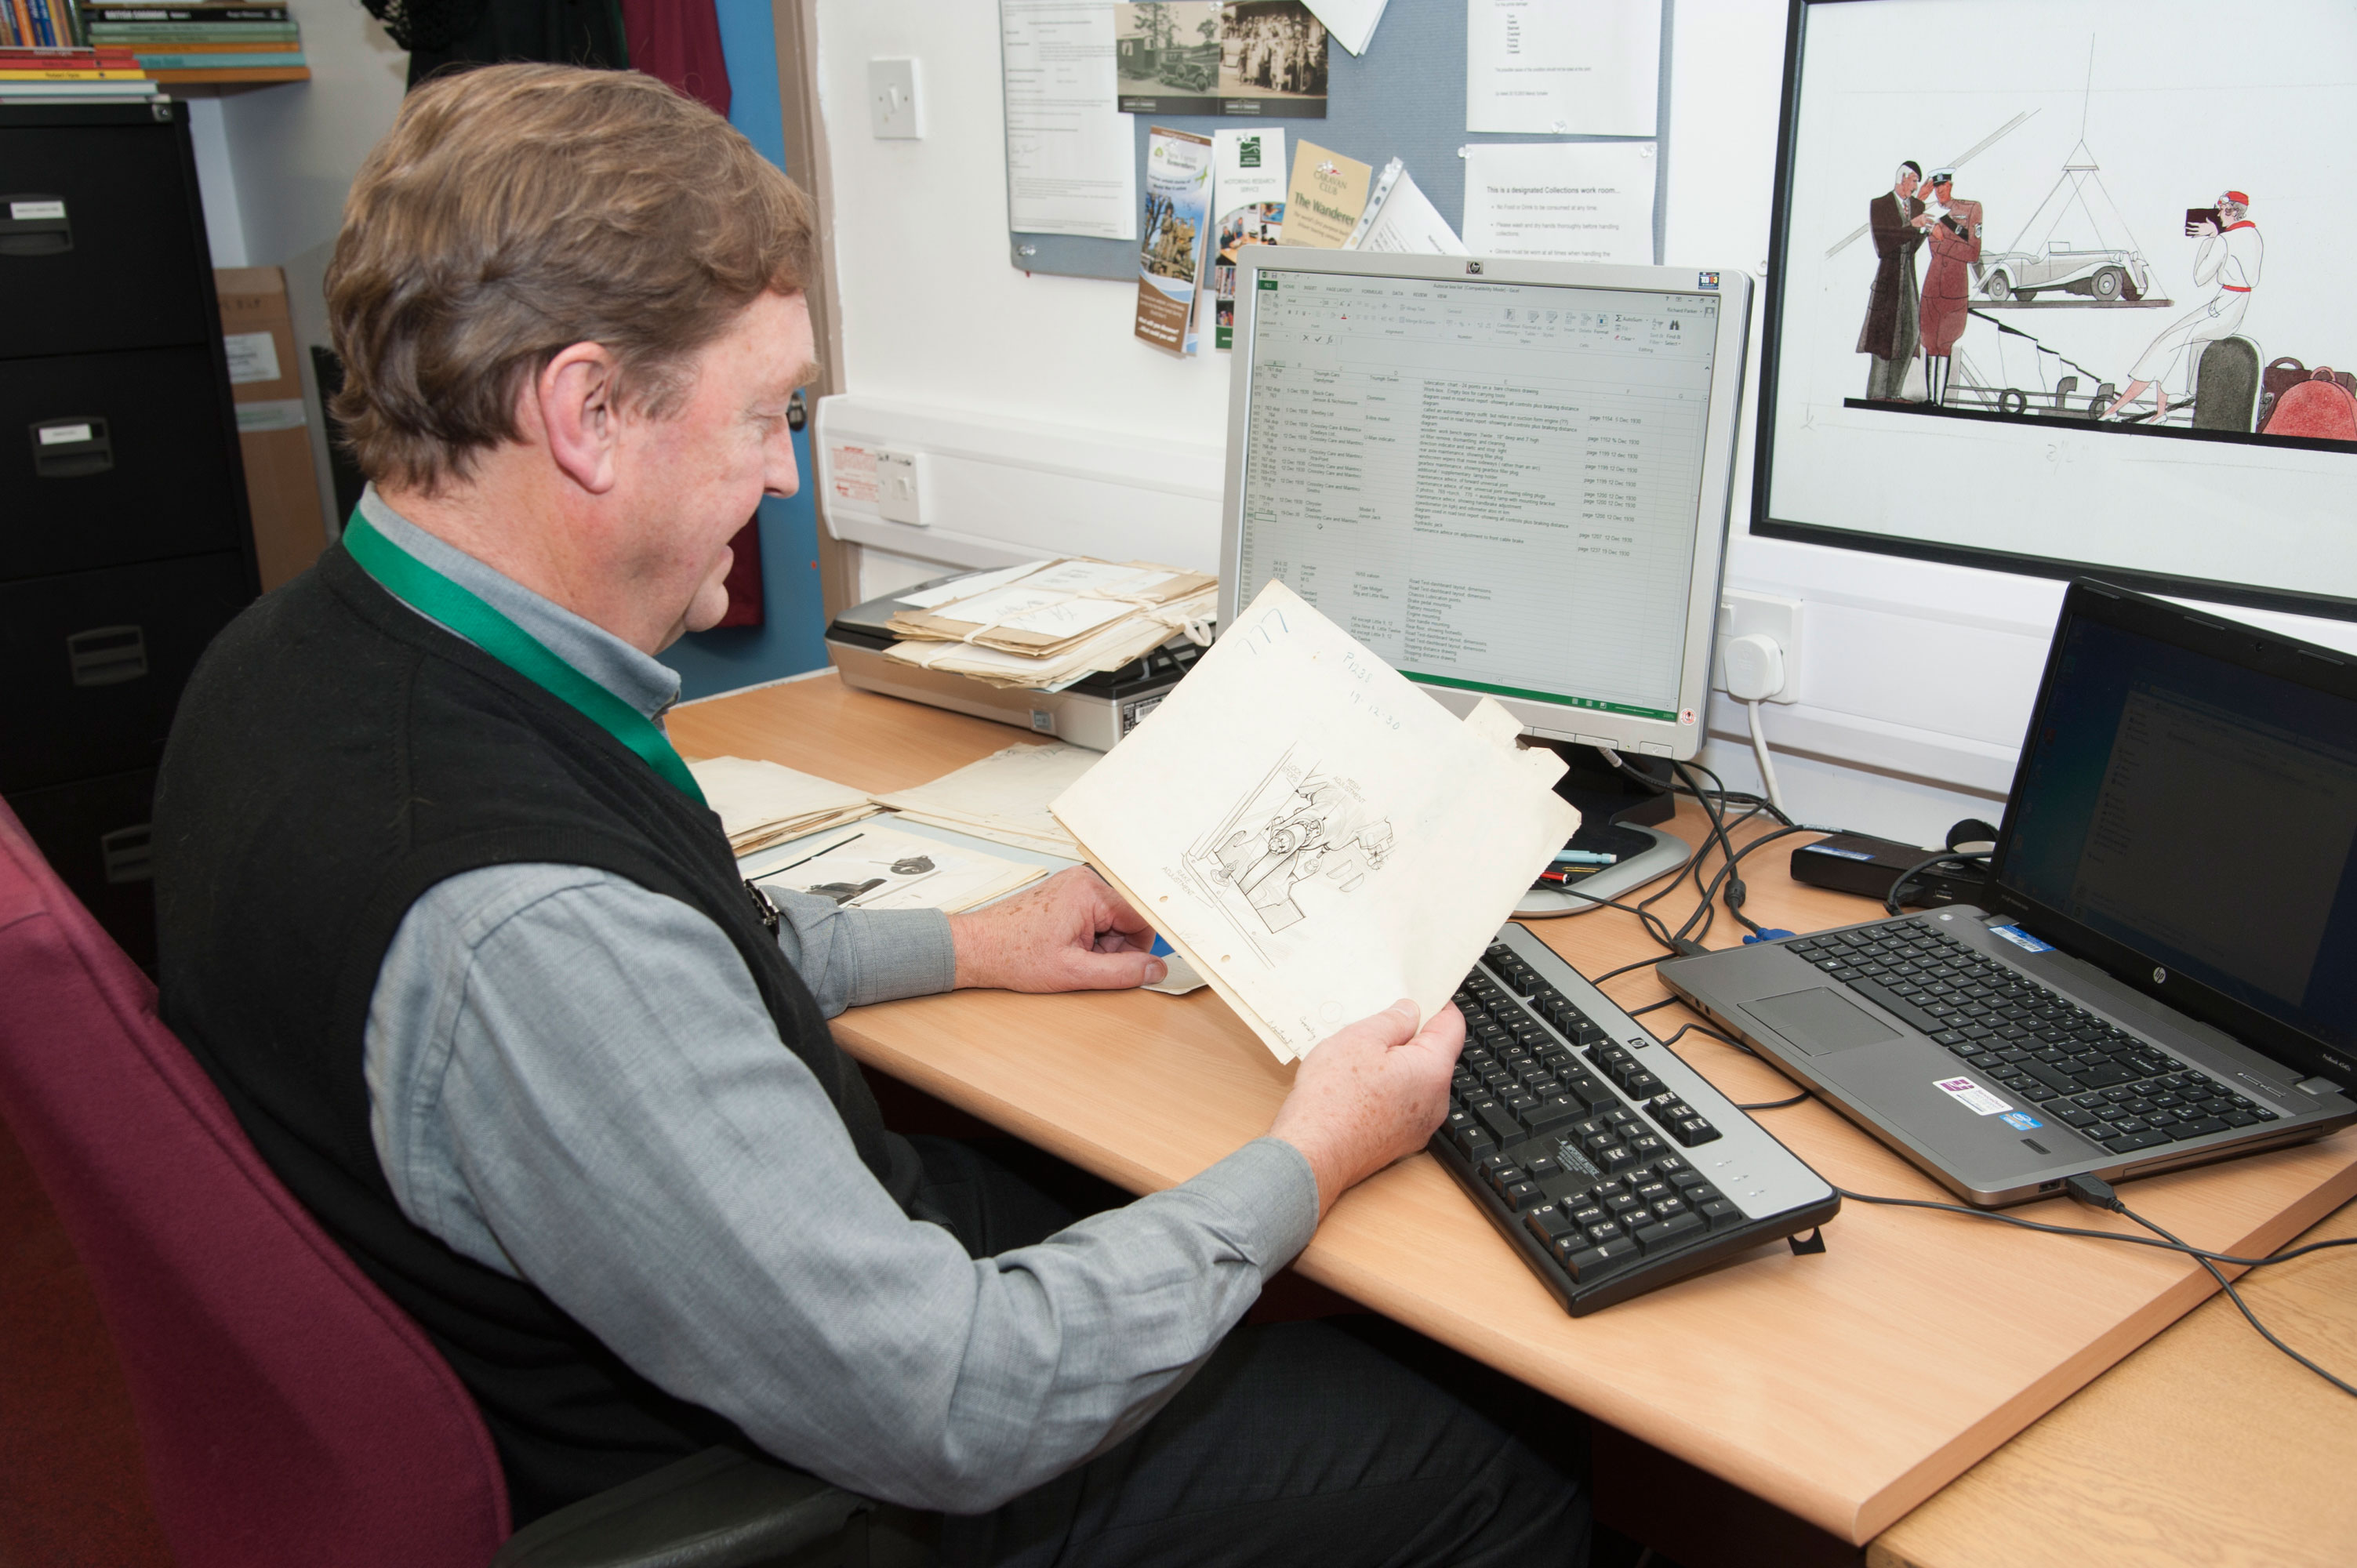 A volunteer inspecting a historic document from the National Motor Museum Trusts archives